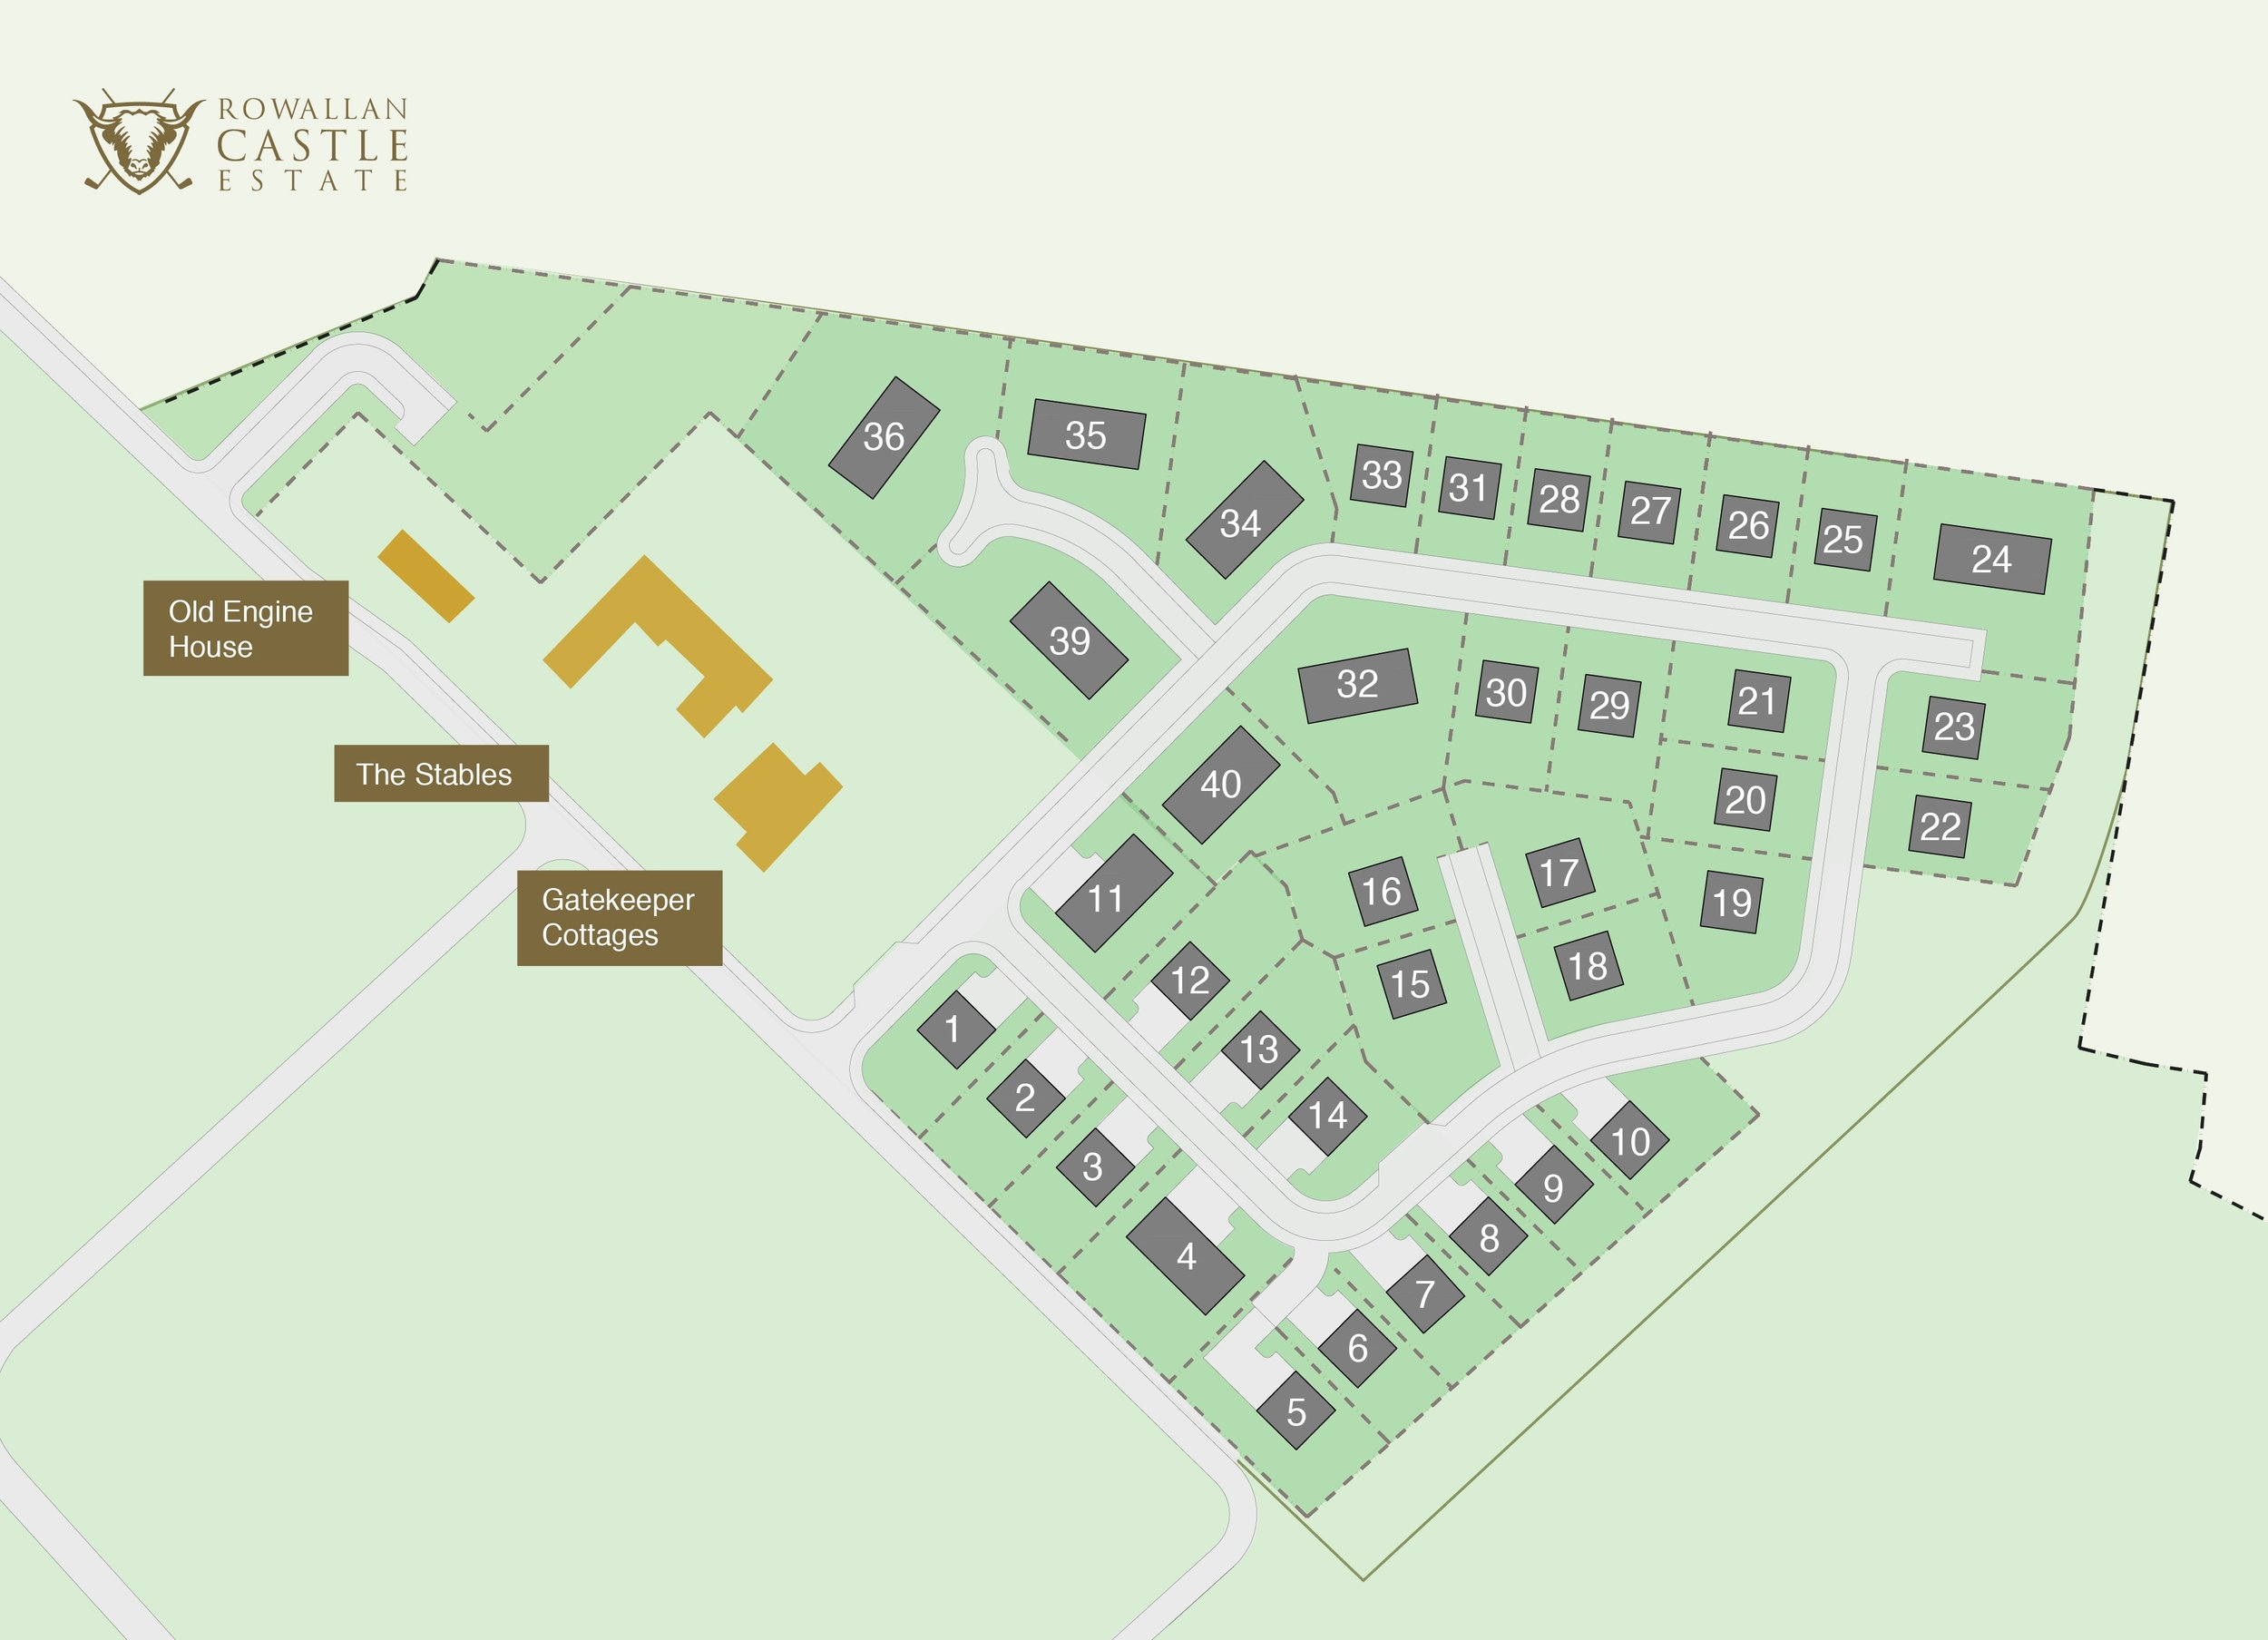 The 40 plots available on Stable Field. A further 26 plots are available on Castle Field to be released in 2019.